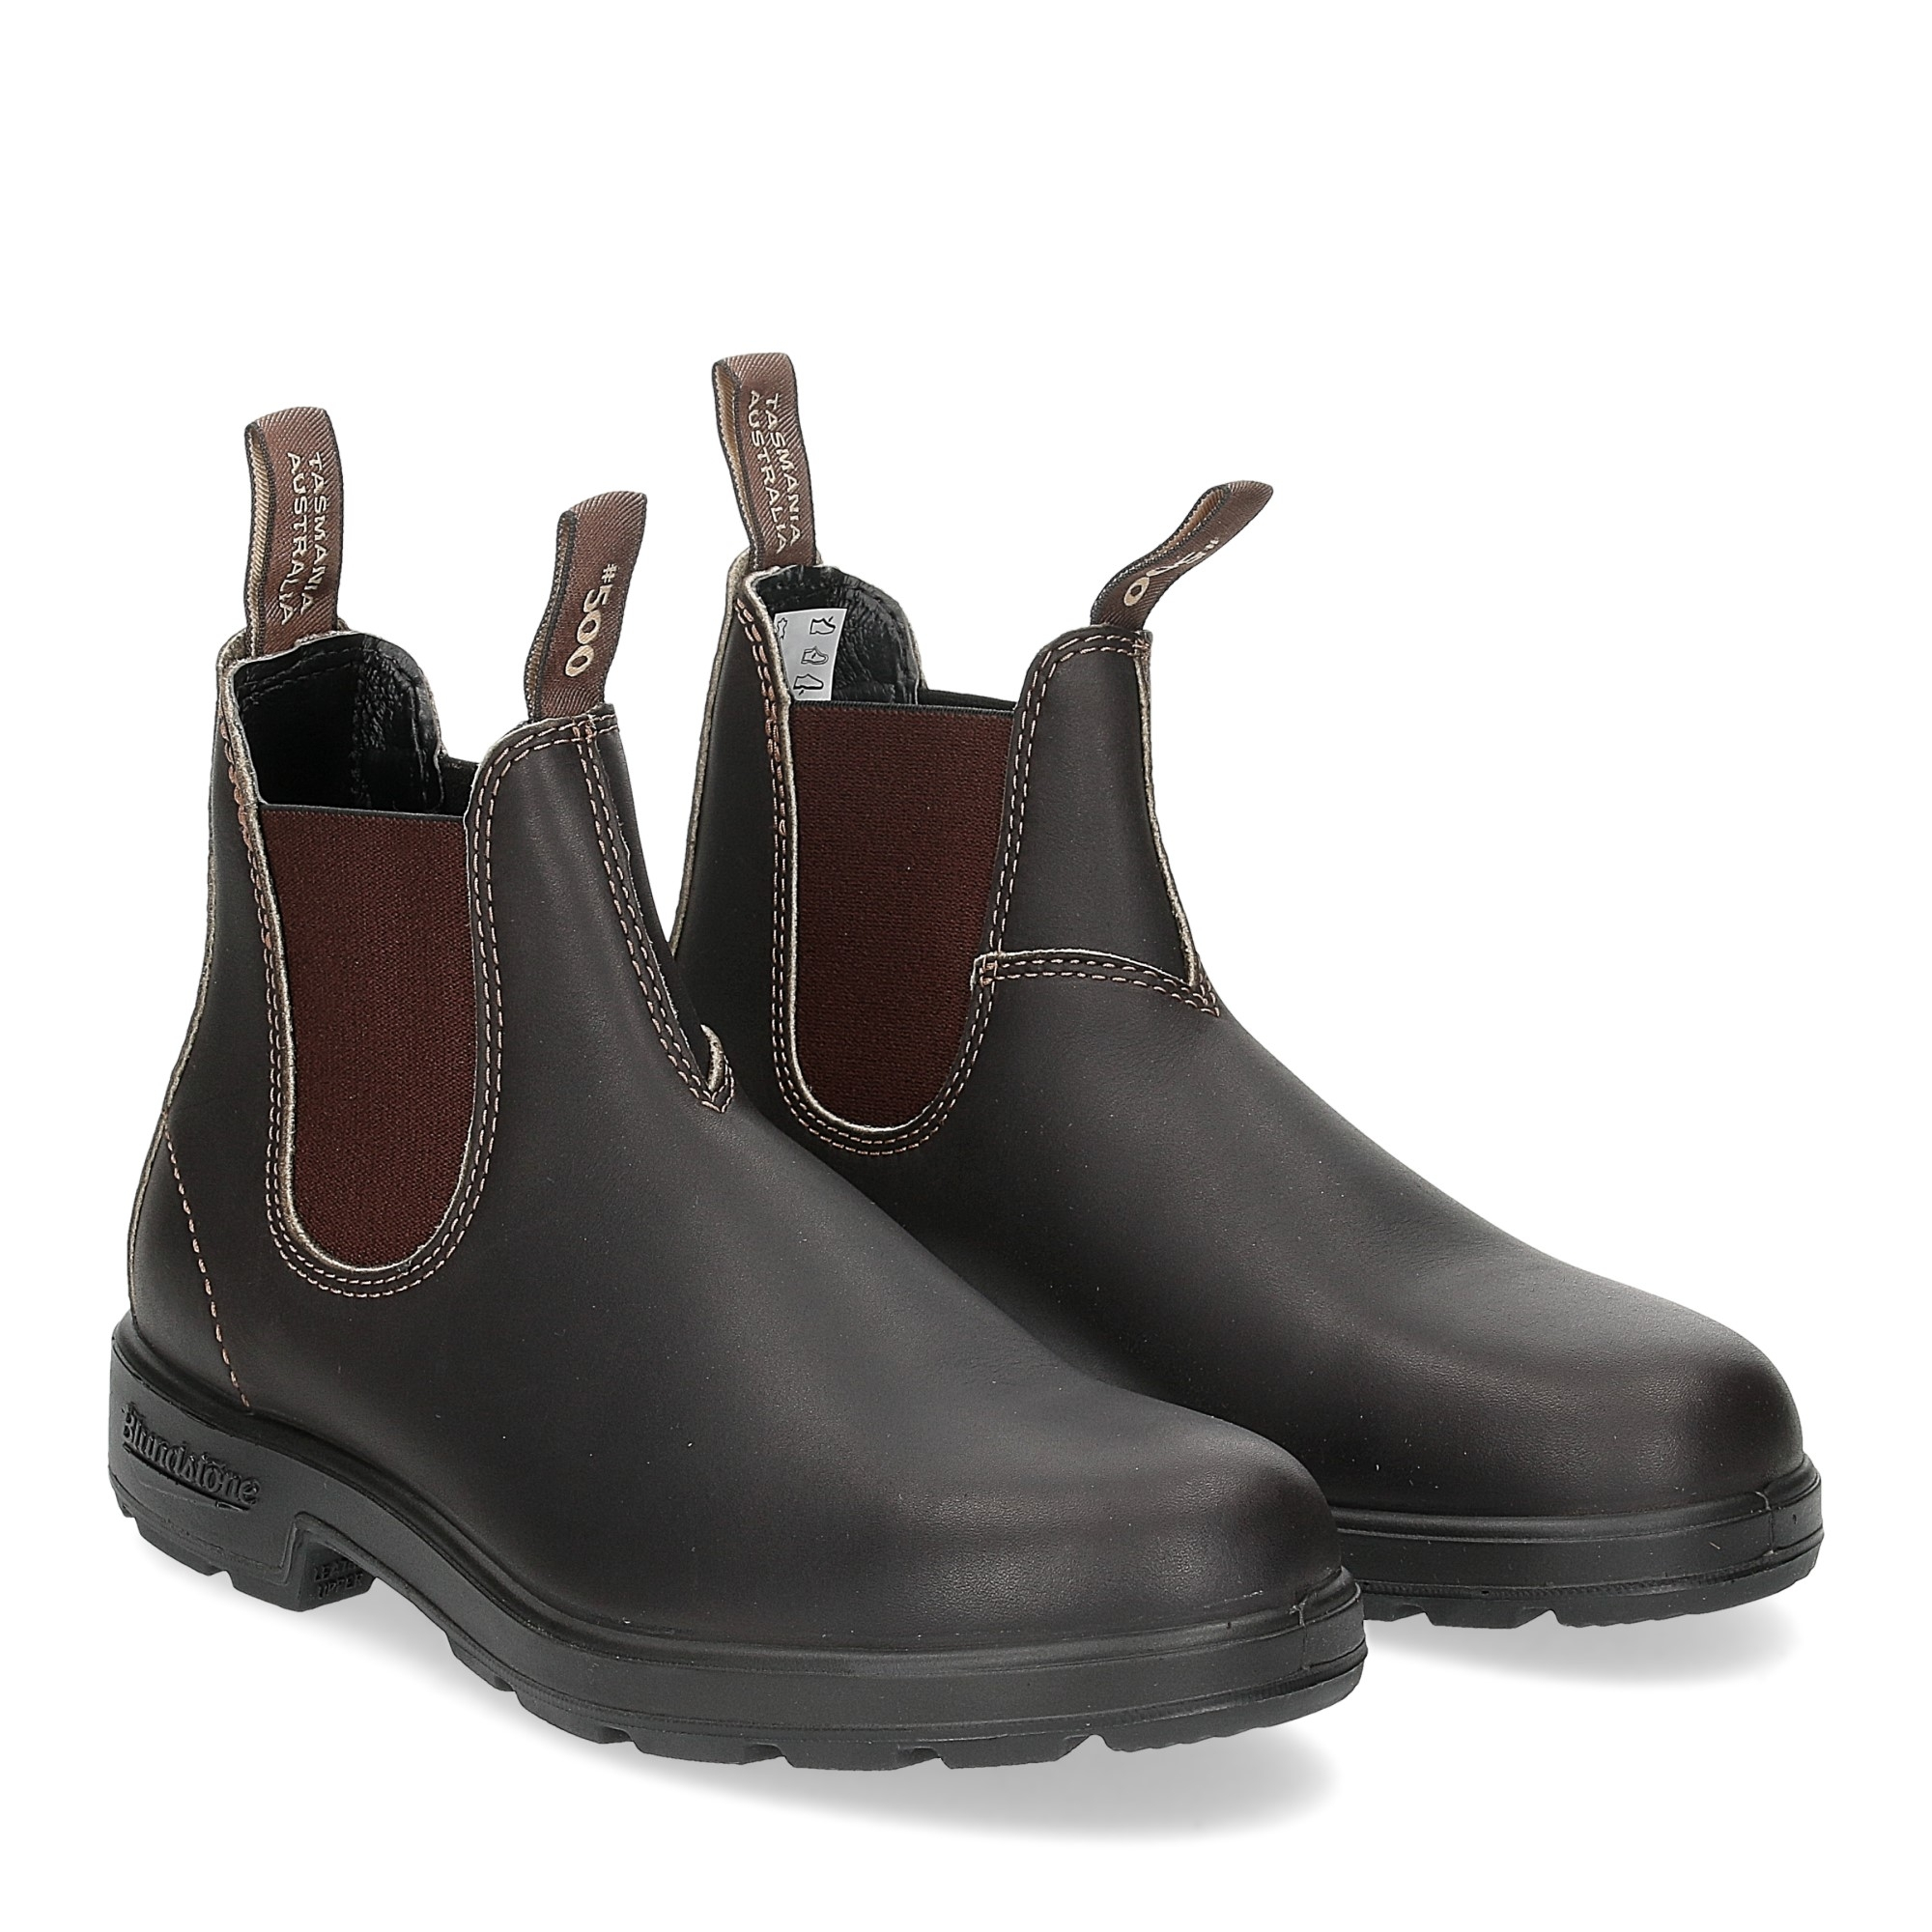 Blundstone 500 stout brown